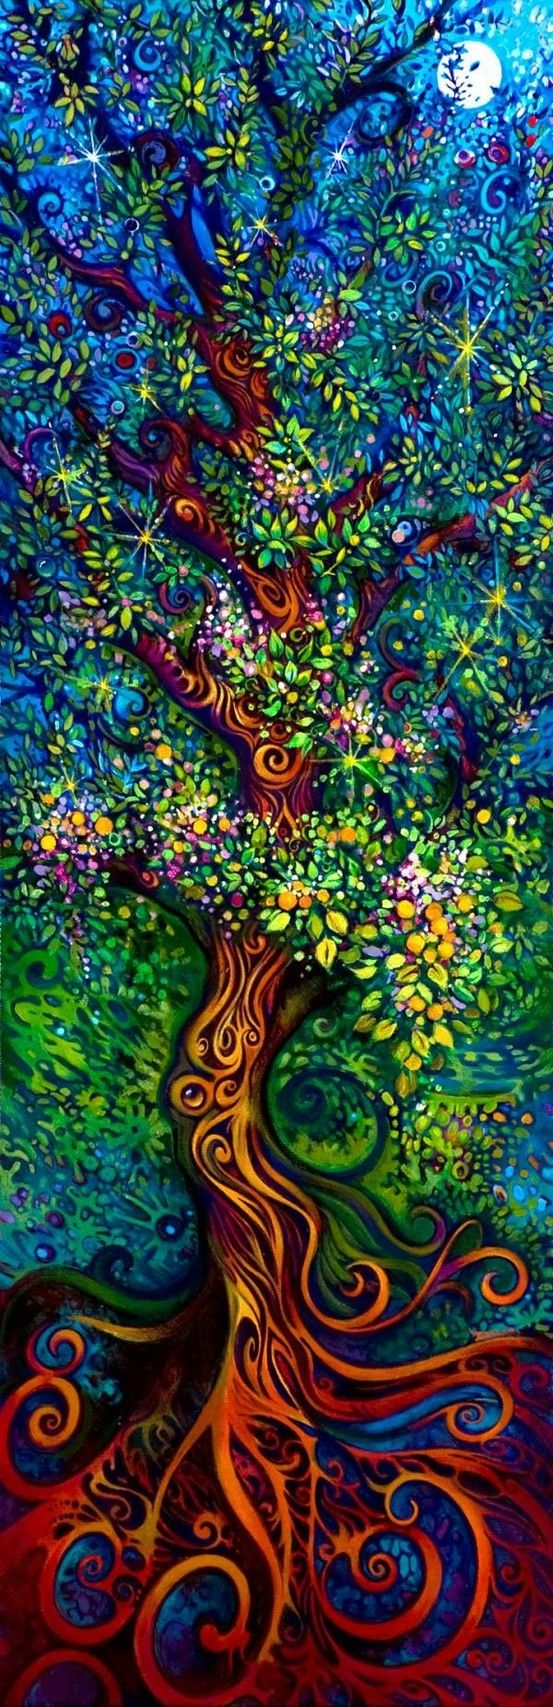 The Tree of Life by artist Laura Zollar by yesenia: